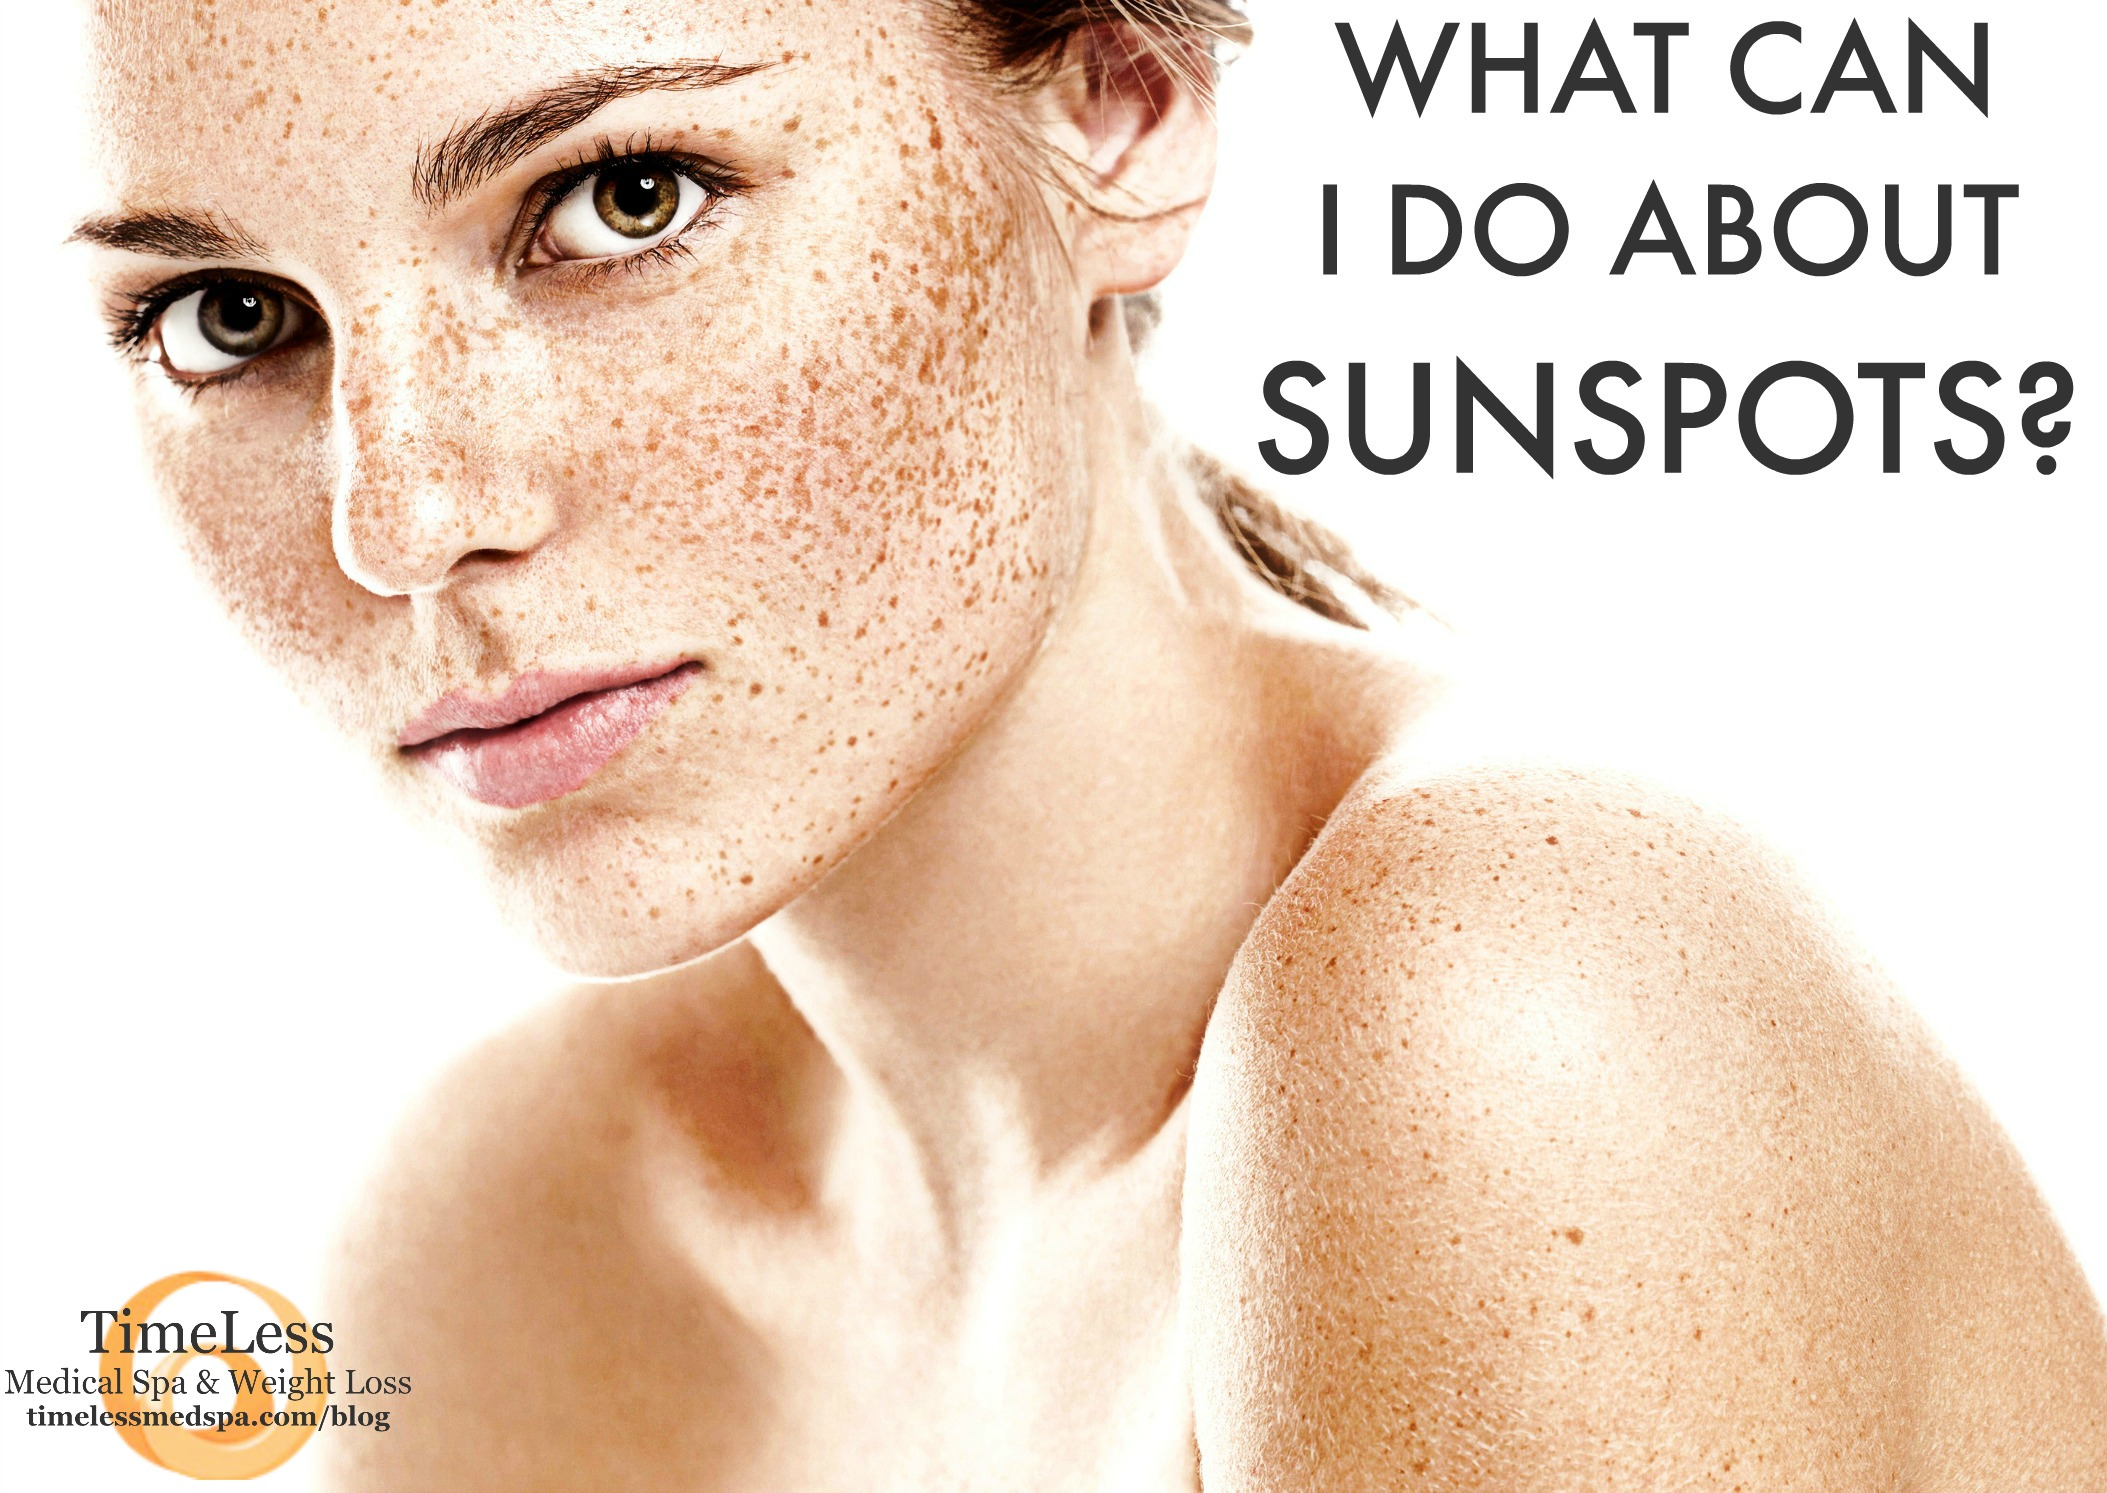 What Can I Do About Sunspots?